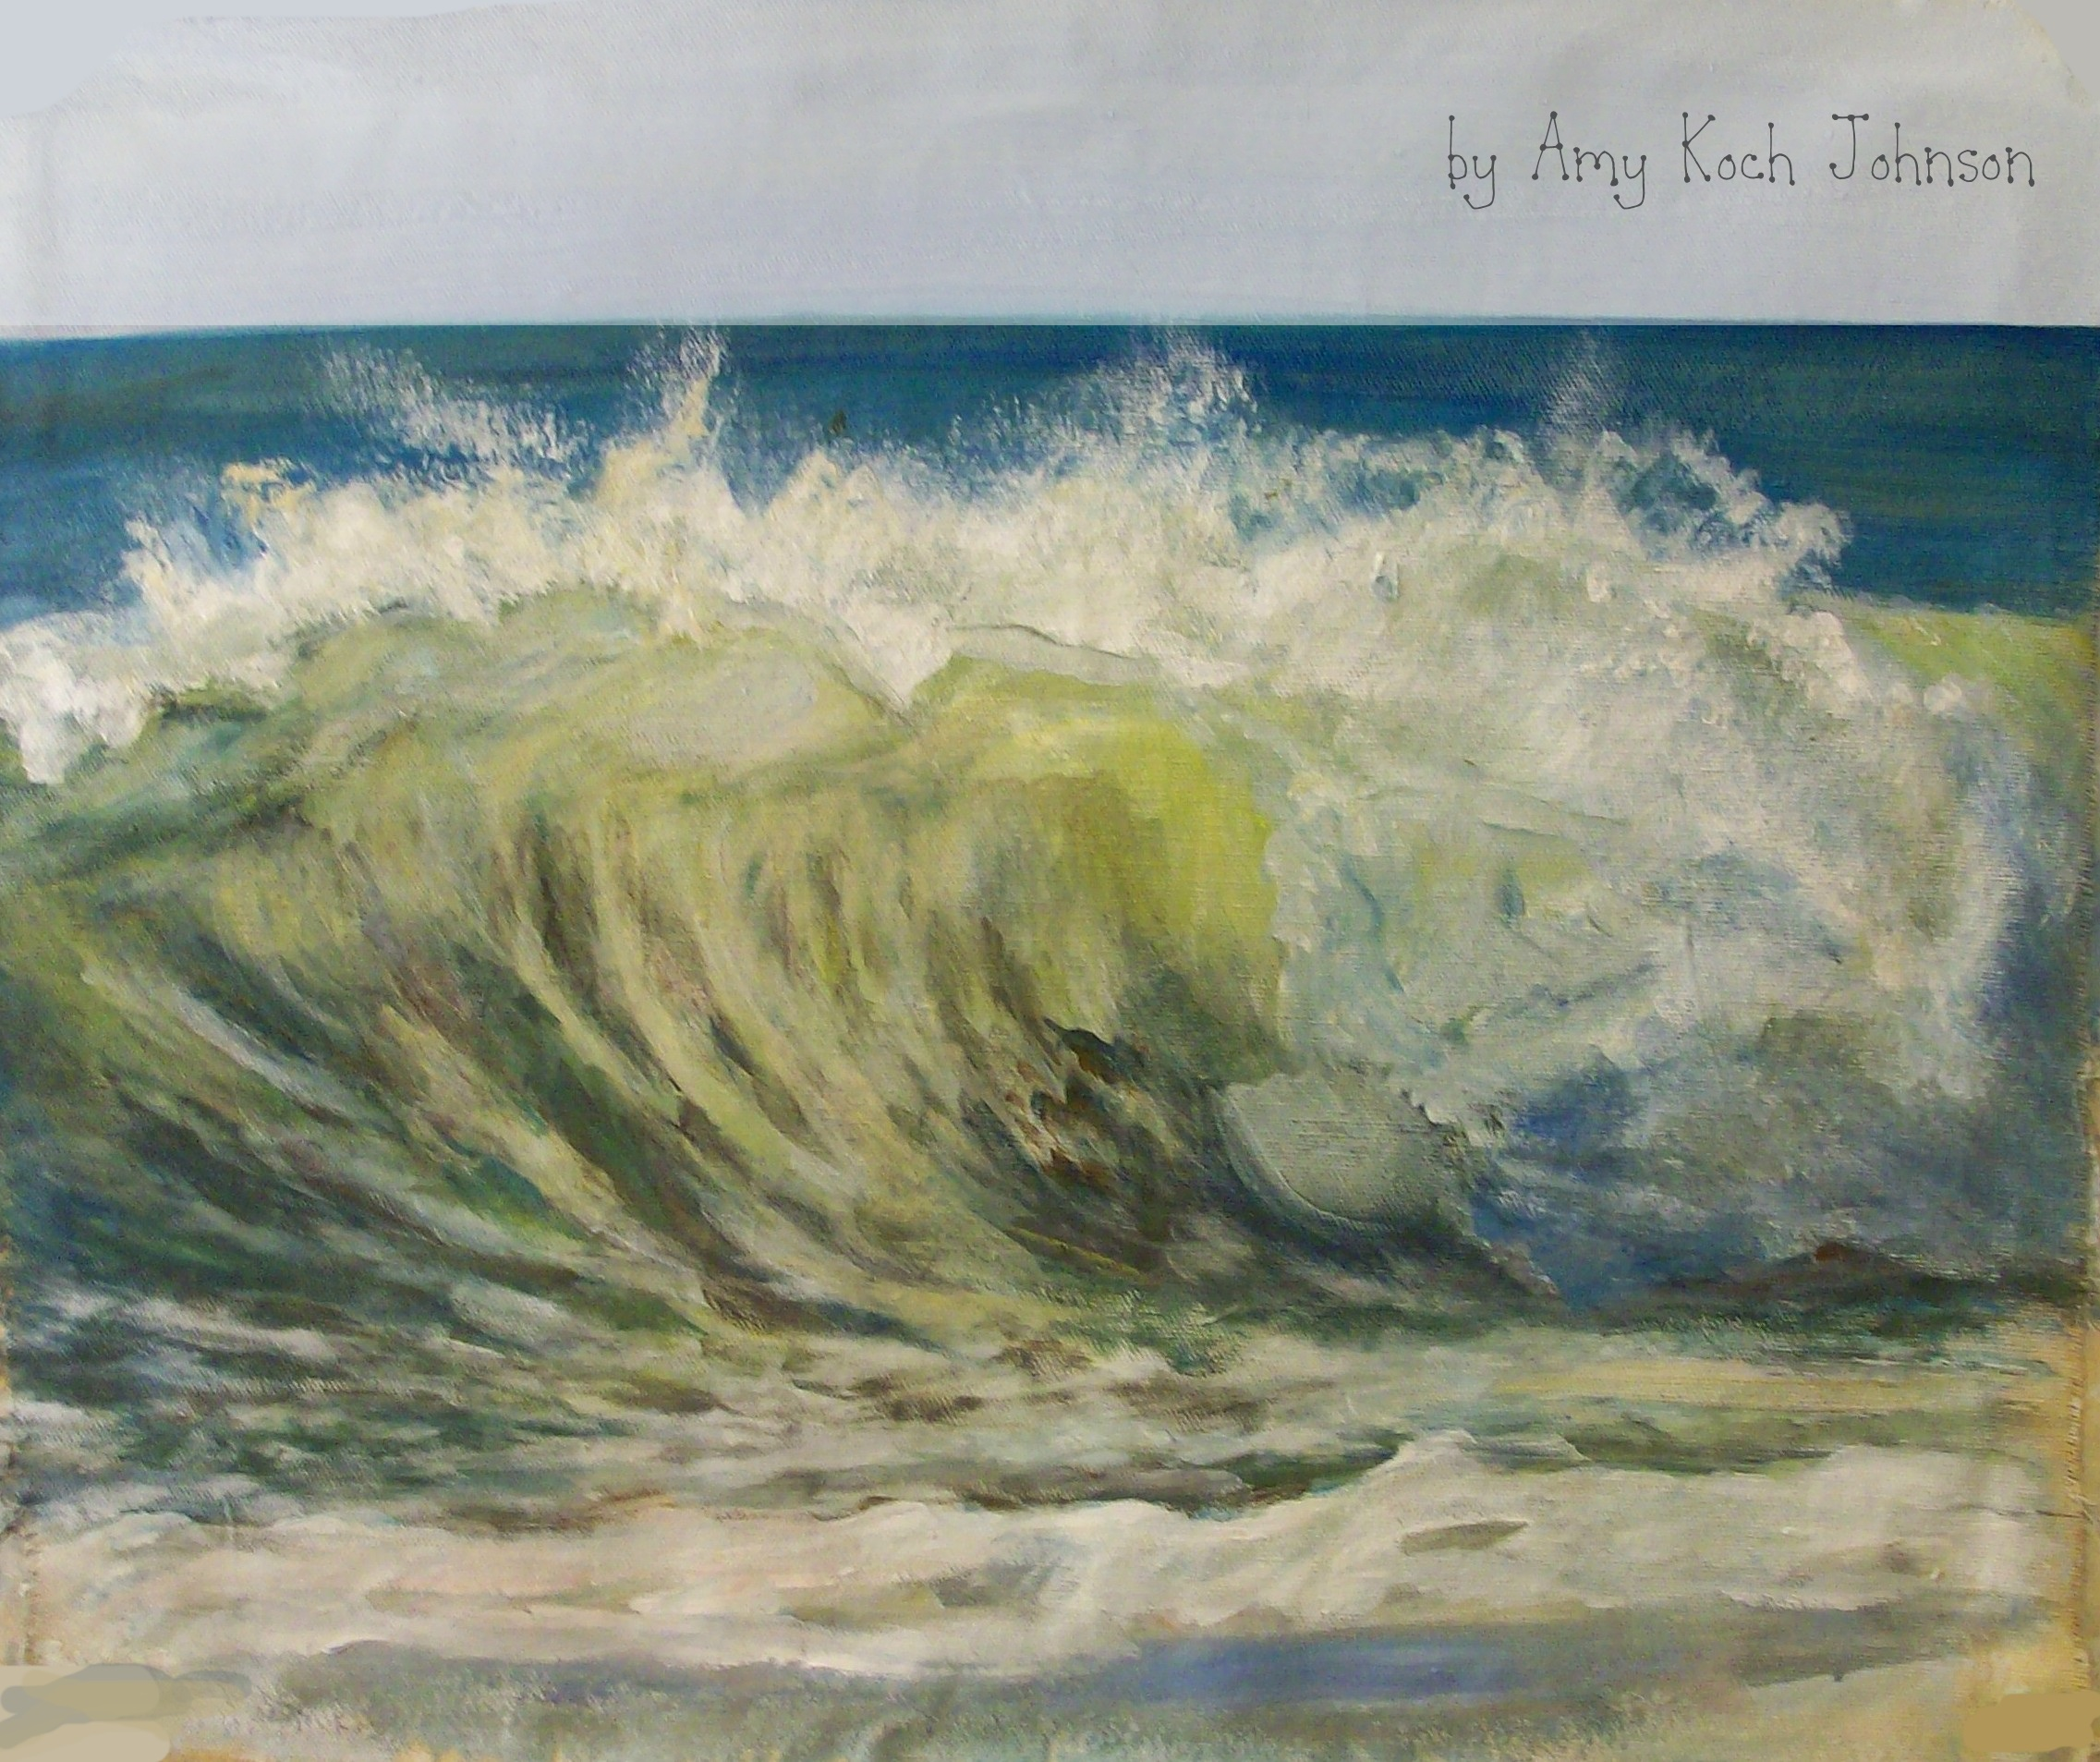 illustrationpaintingwave